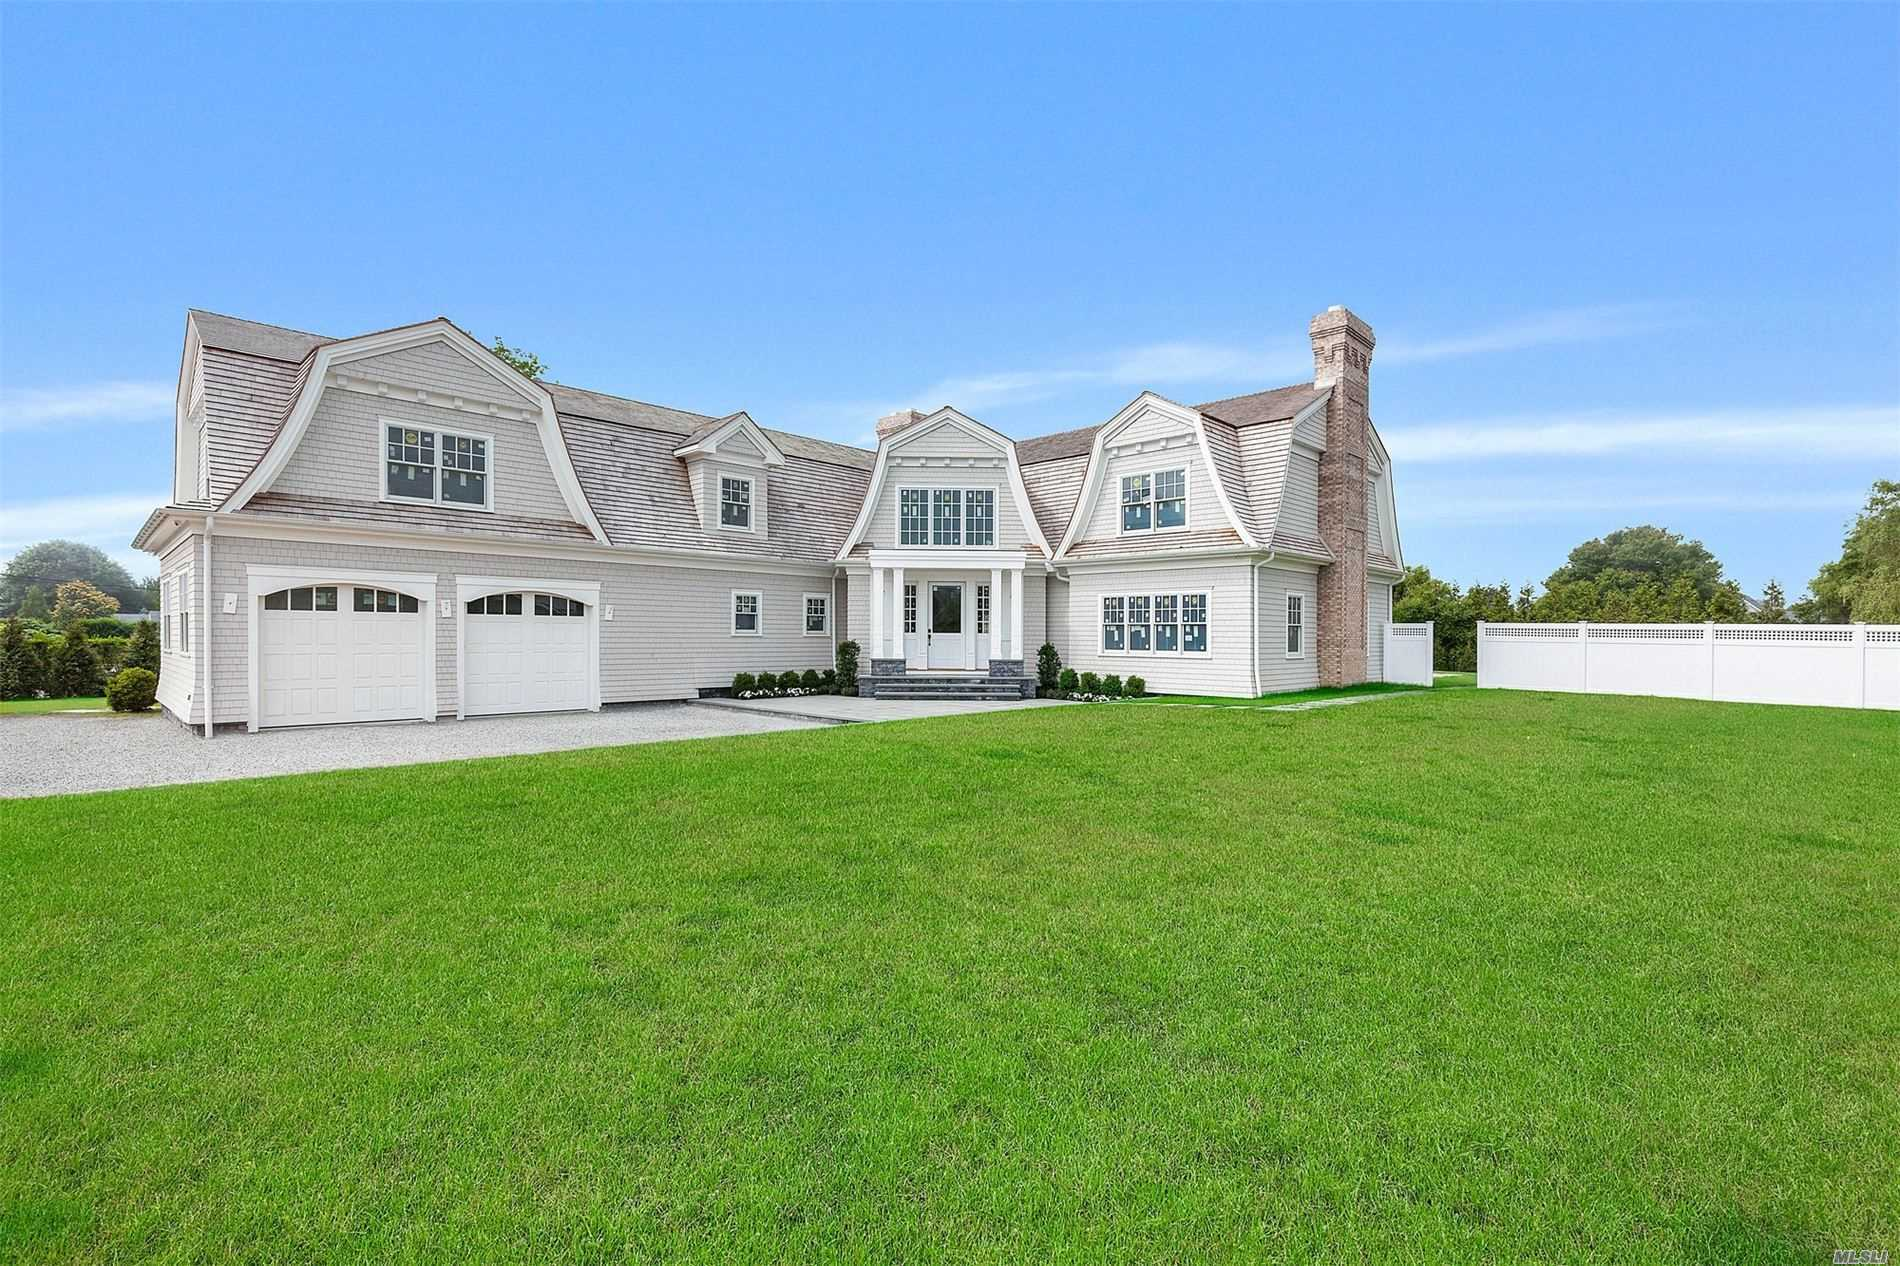 51 Jessup Ln, Westhampton Bch, New York 11978, 5 Bedrooms Bedrooms, ,5 BathroomsBathrooms,Residential,For Sale,Jessup,3226103